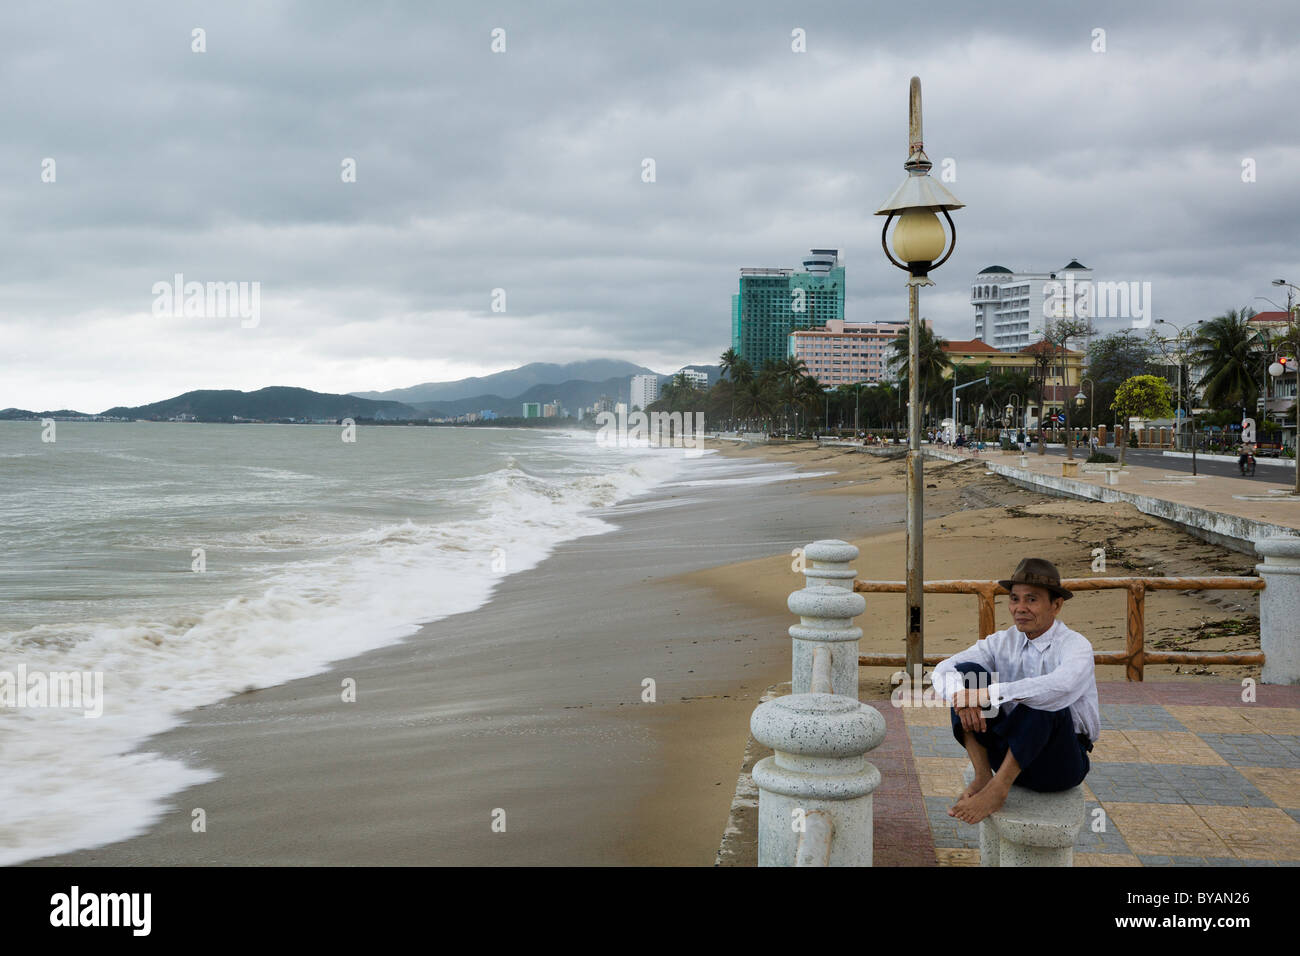 Man watching a storm by the beach in Nha Trang, Vietnam Stock Photo